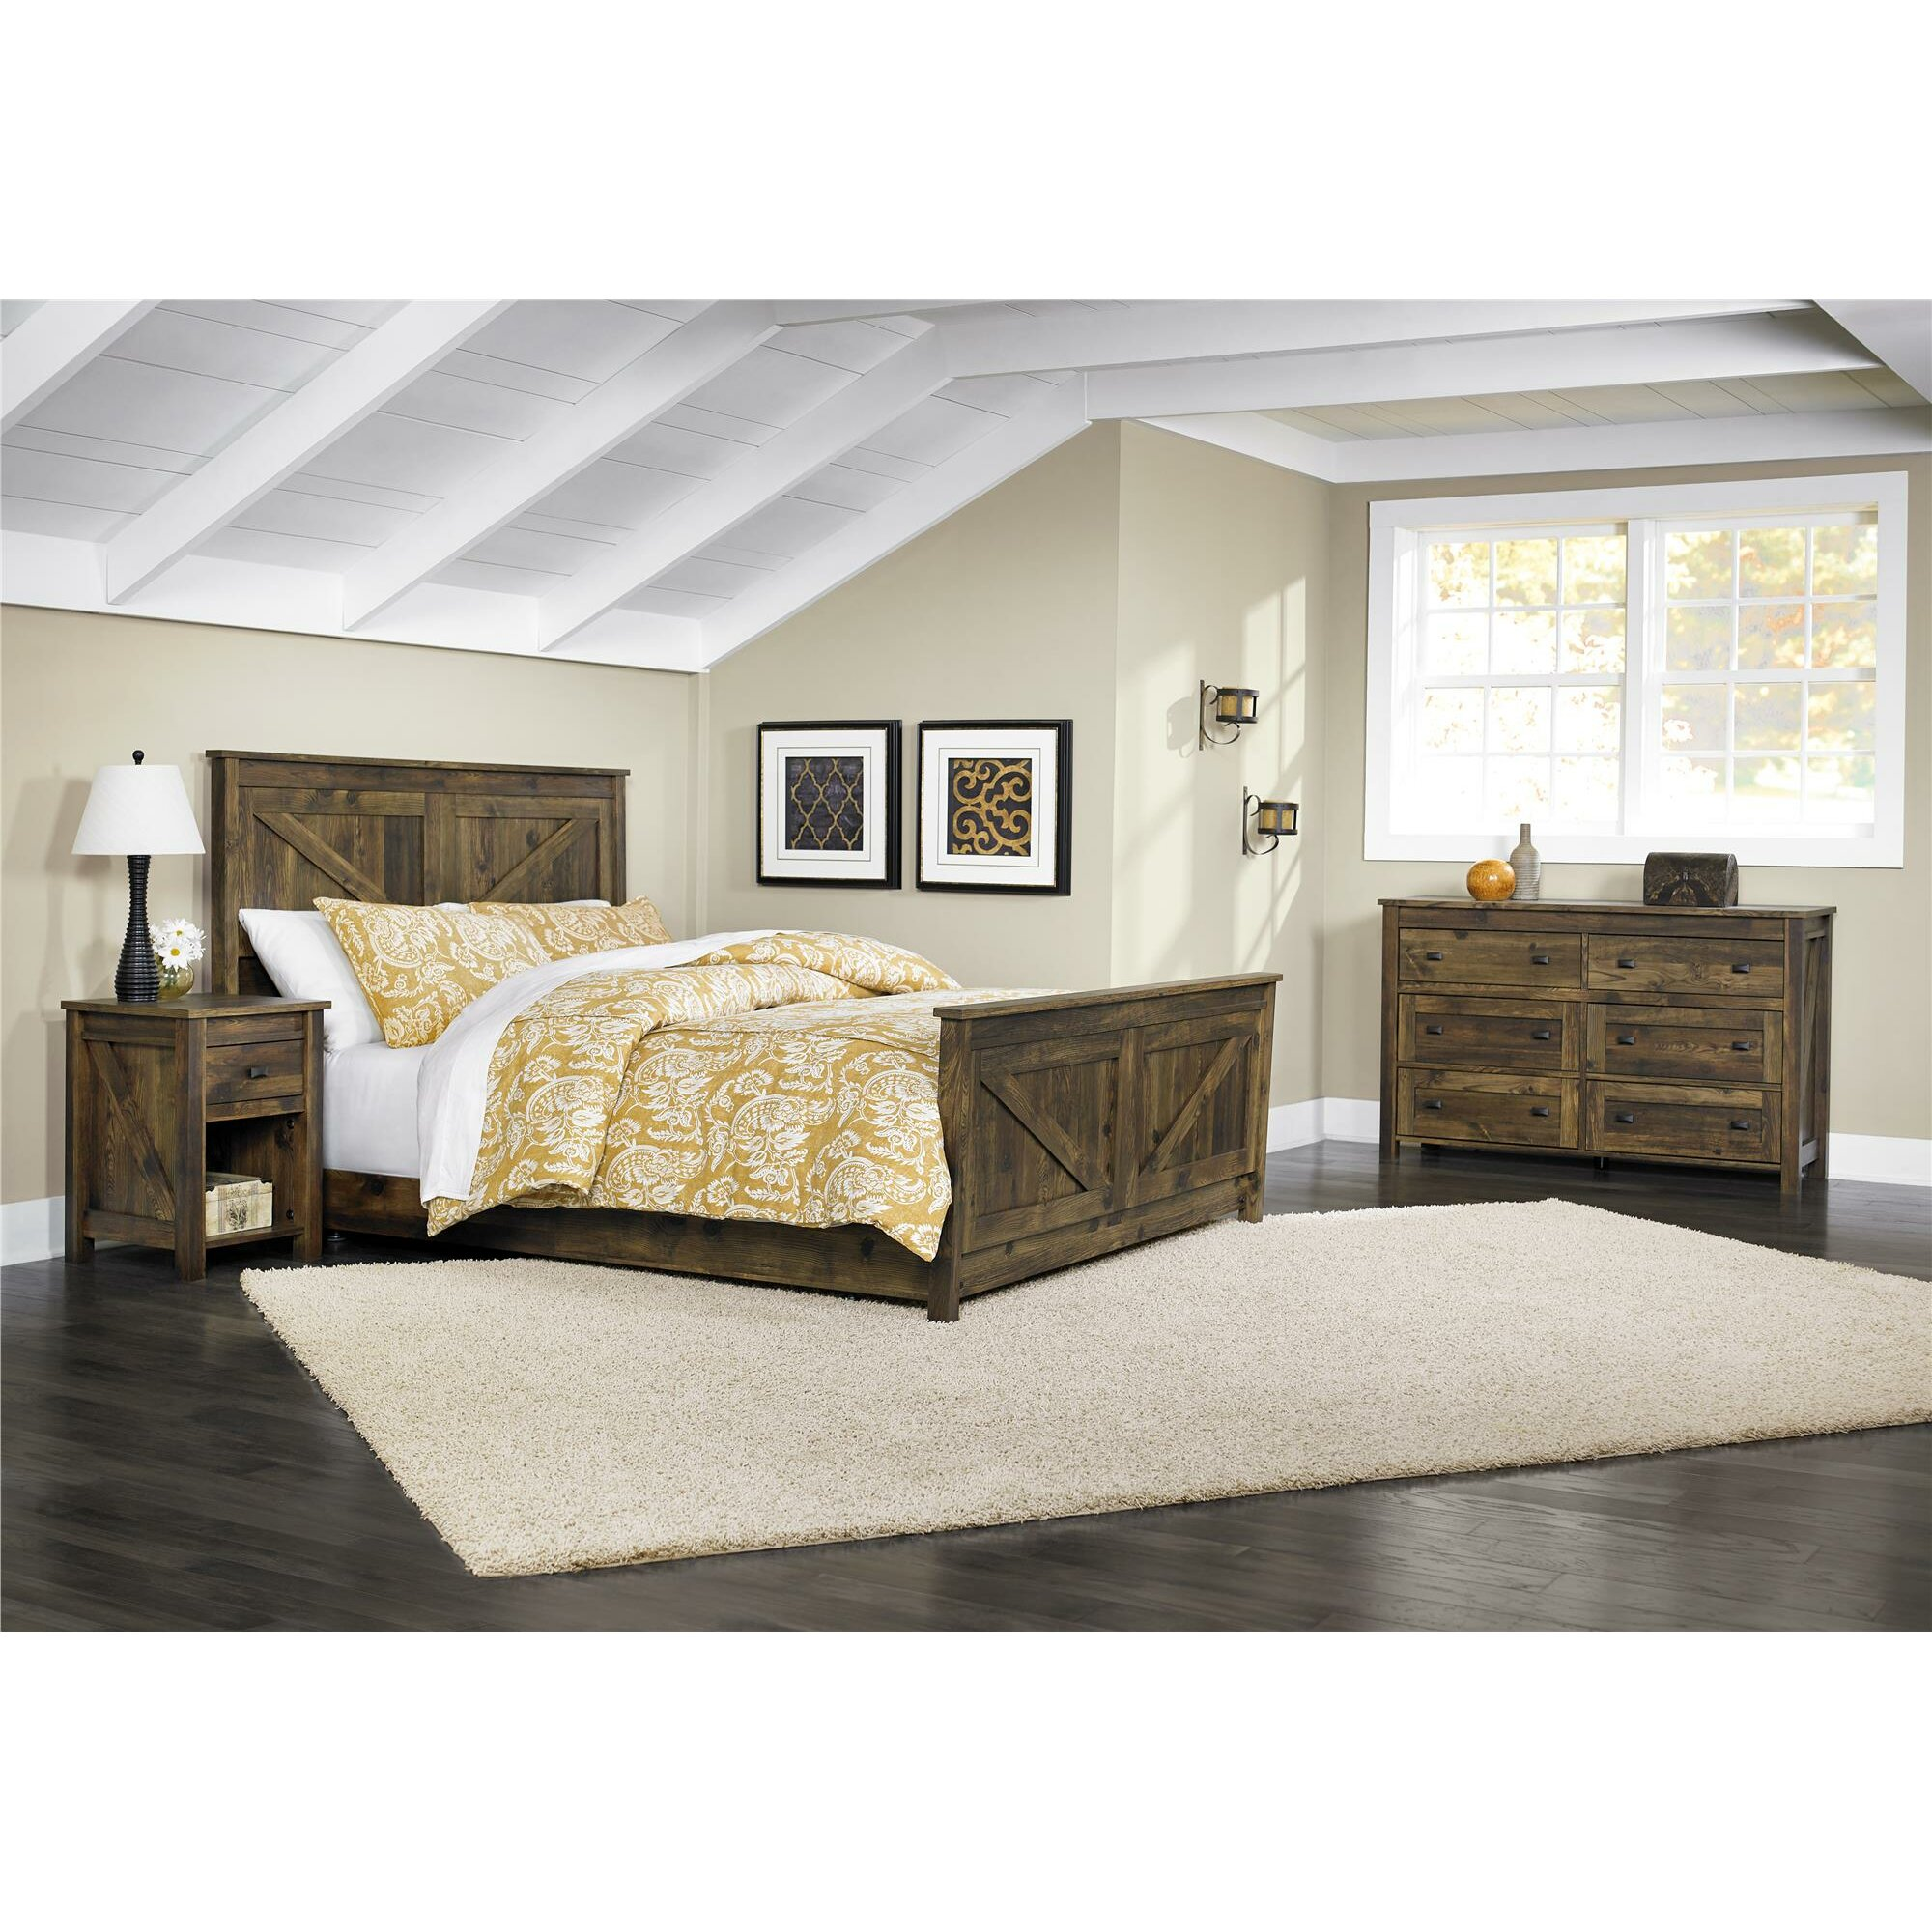 August Grove Gilby Queen Panel Customizable Bedroom Set